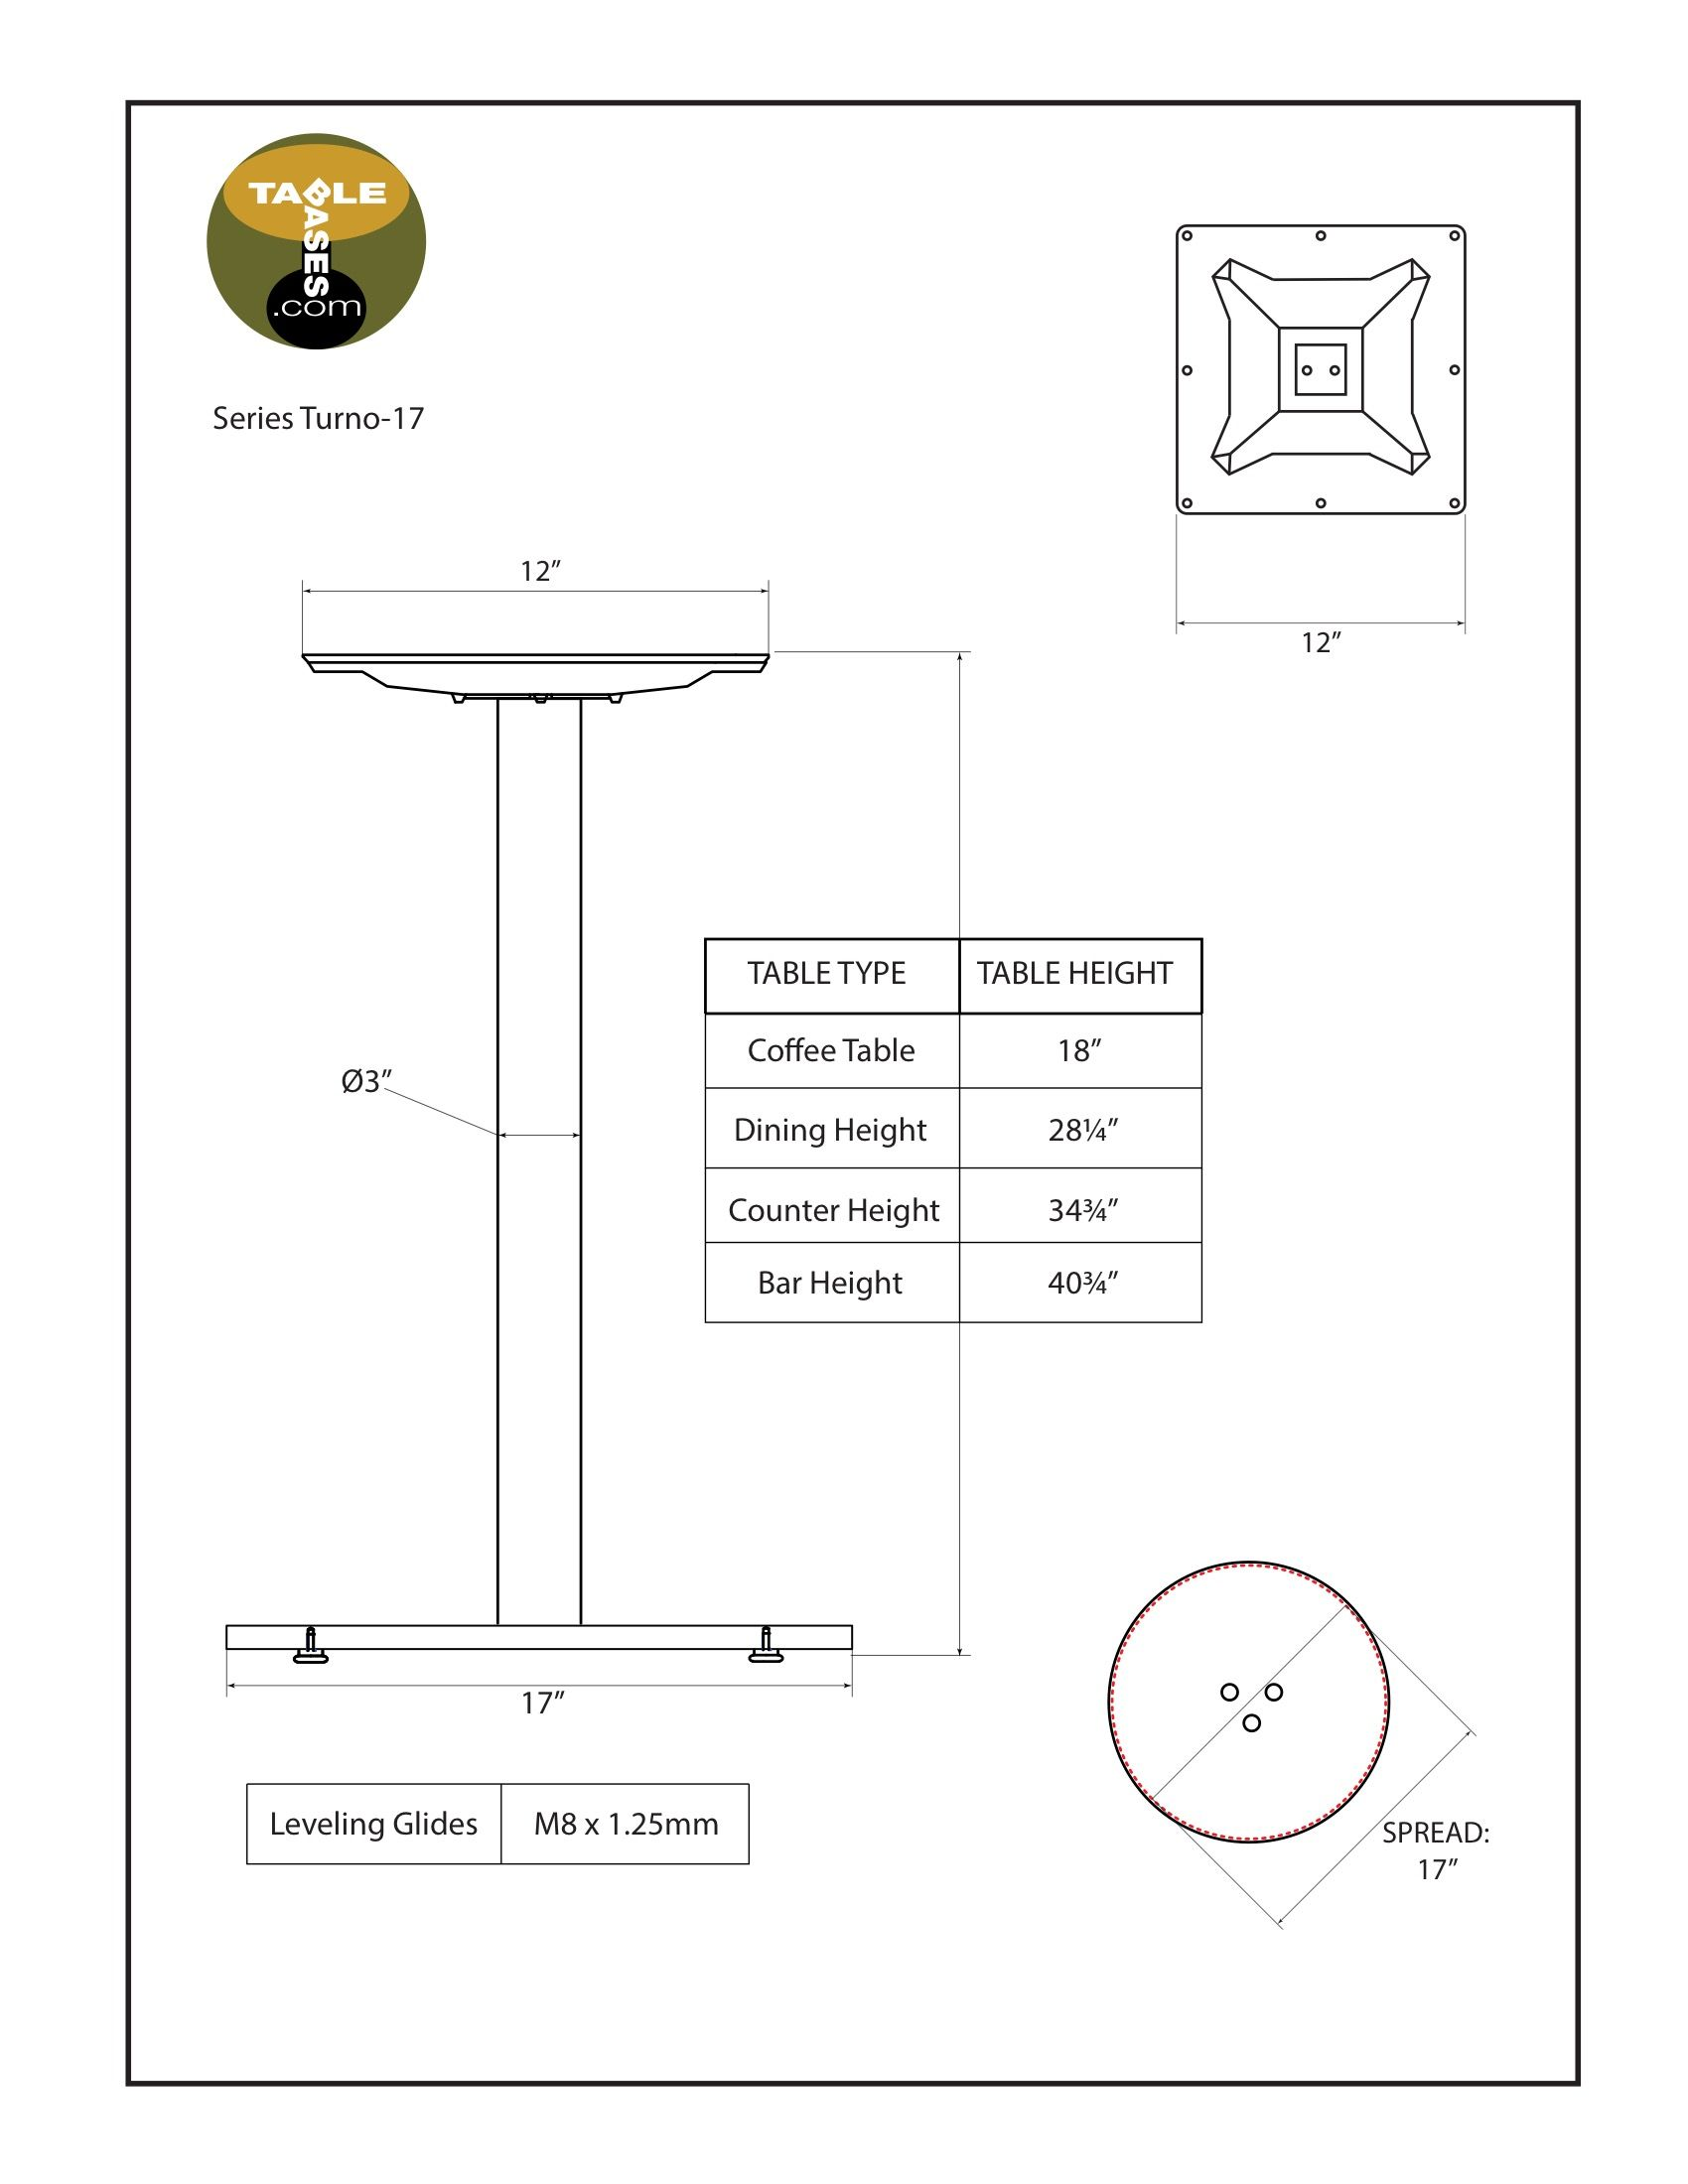 Turno-17 Table Base Specifications